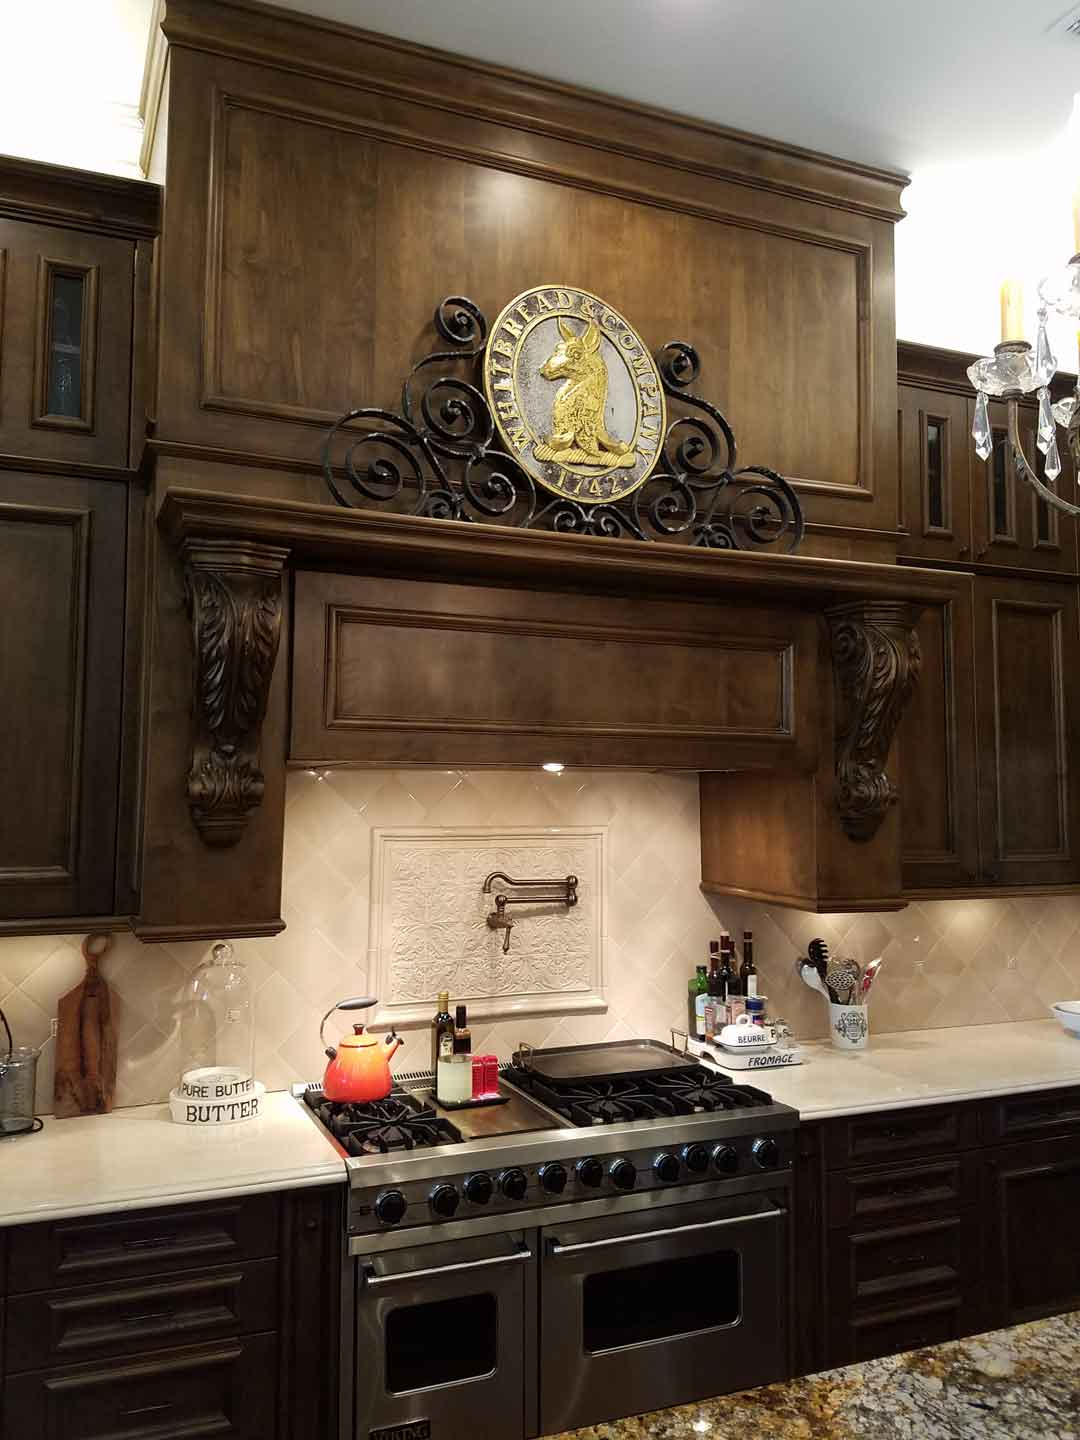 kitchen-gas-stove-with-pot-faucet-and-custom-hood-with-vintage-plaque-on-top